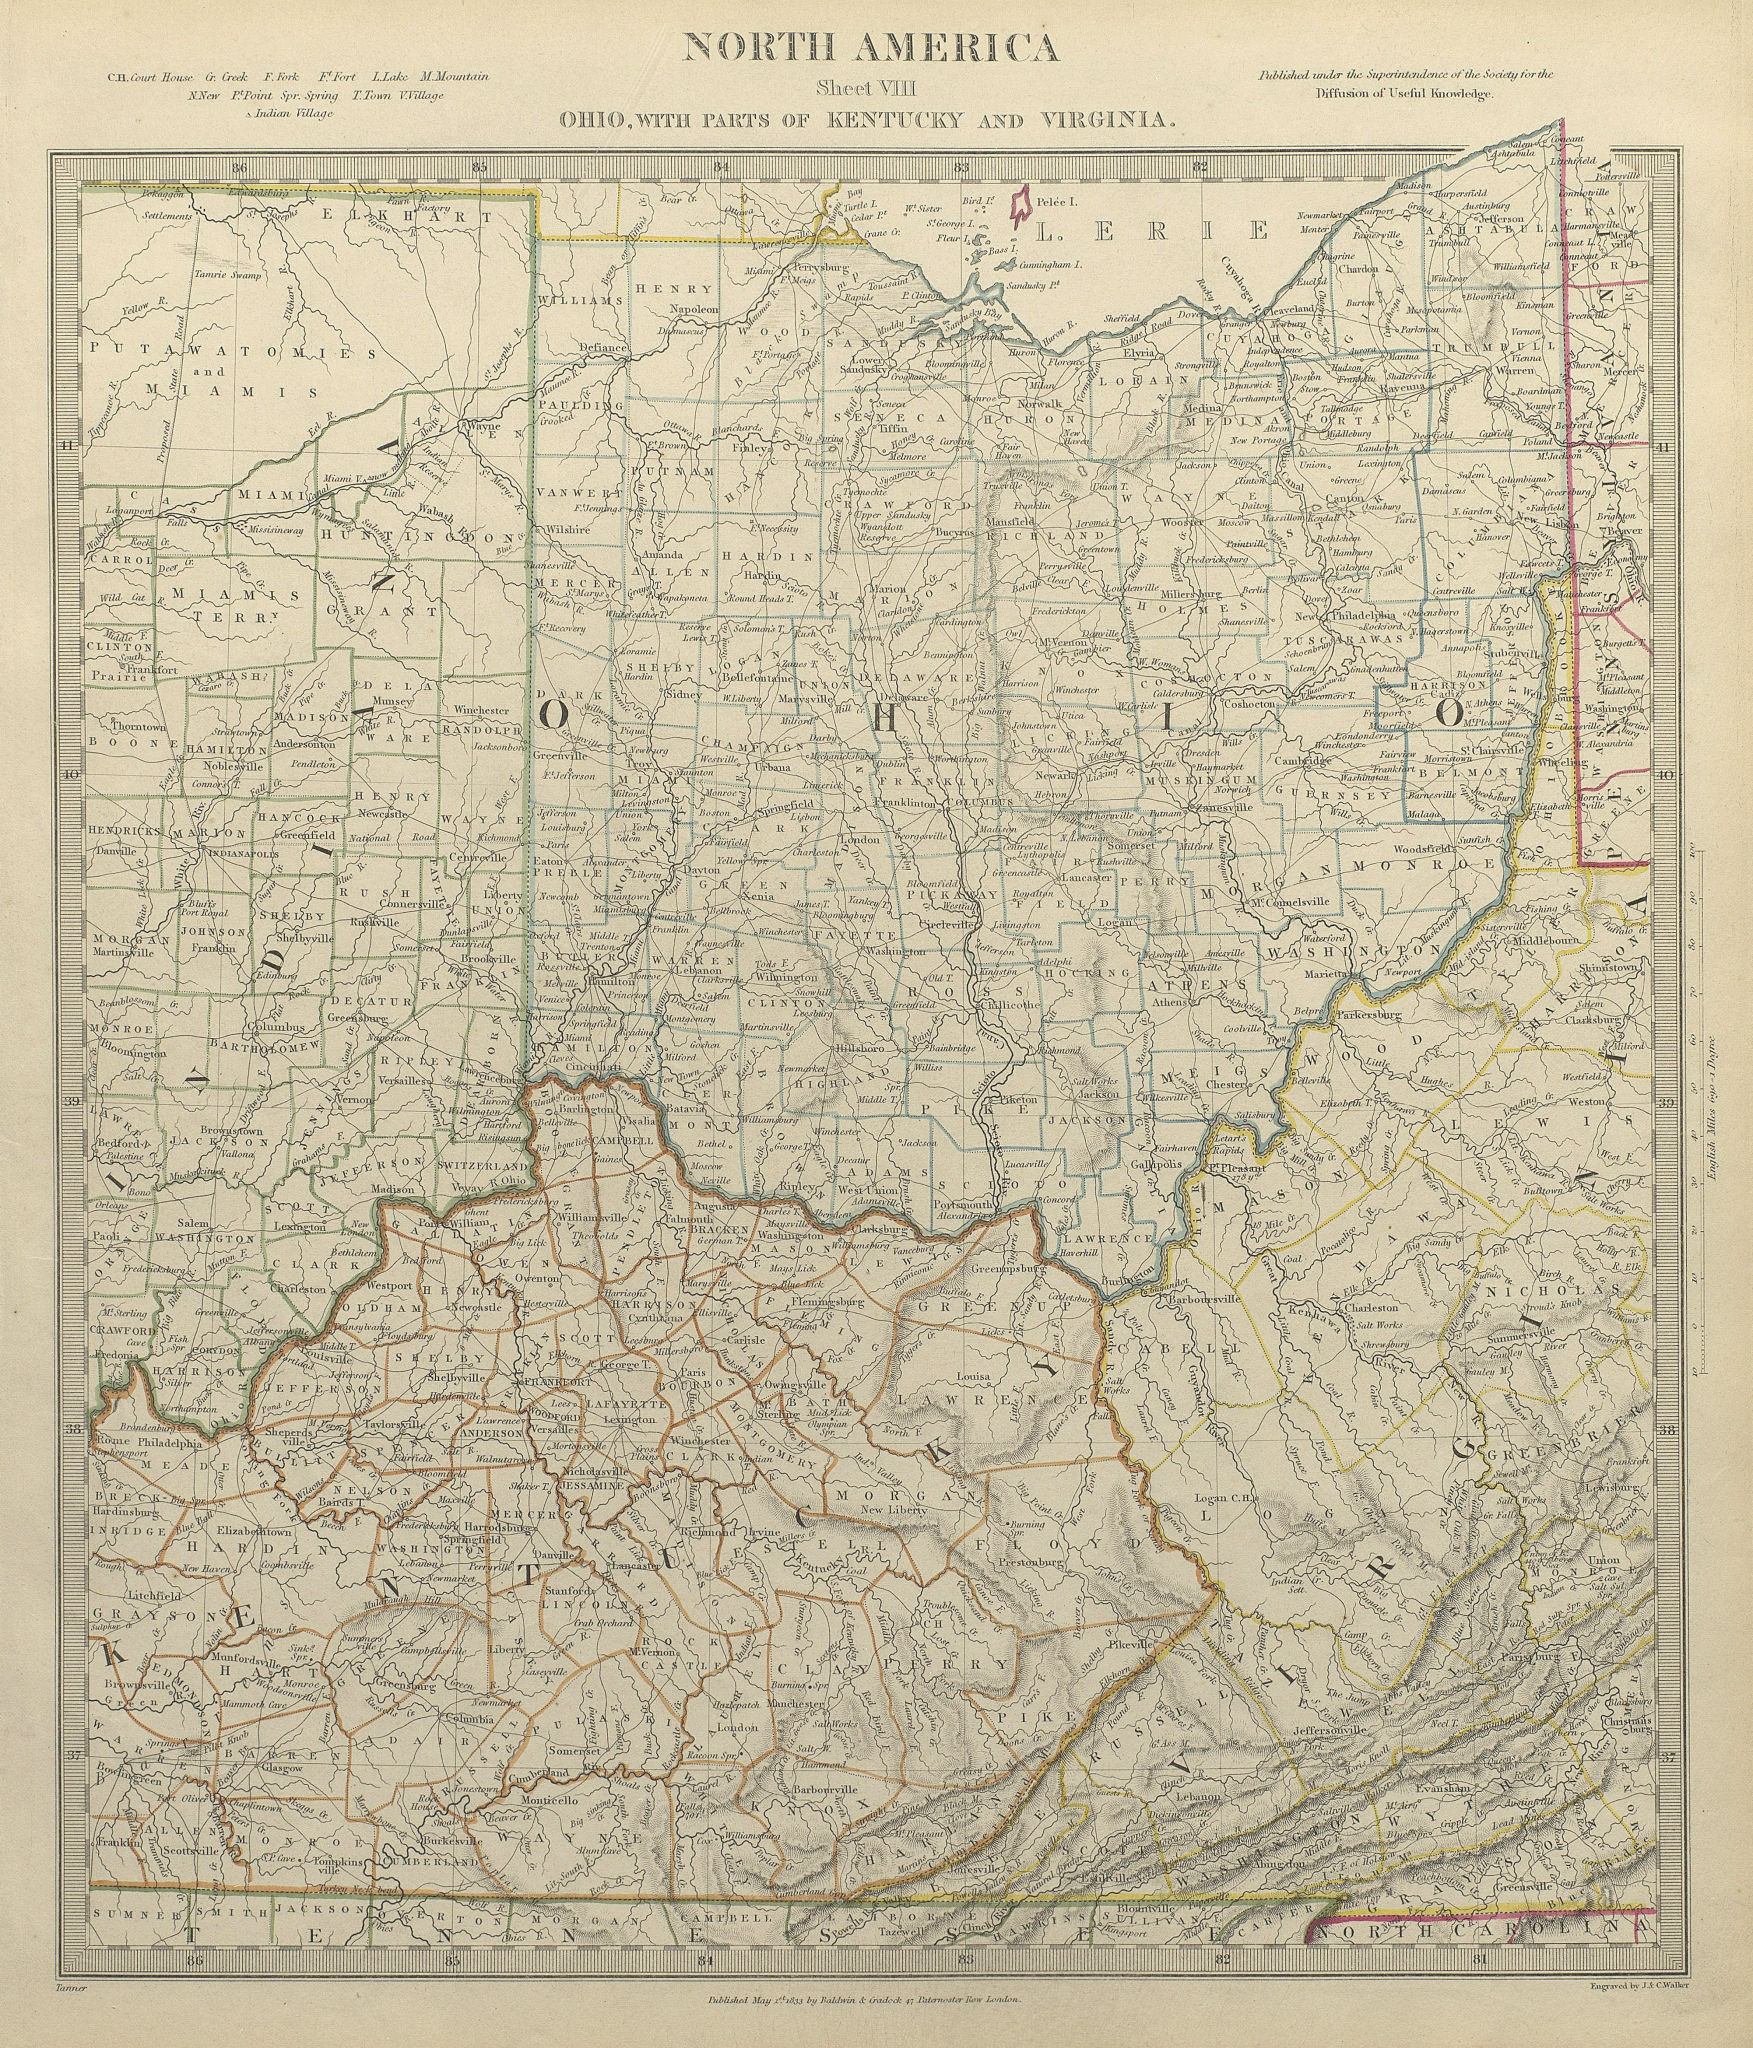 Associate Product USA. Ohio with parts of Kentucky, Virginia & Indiana. Counties. SDUK 1844 map